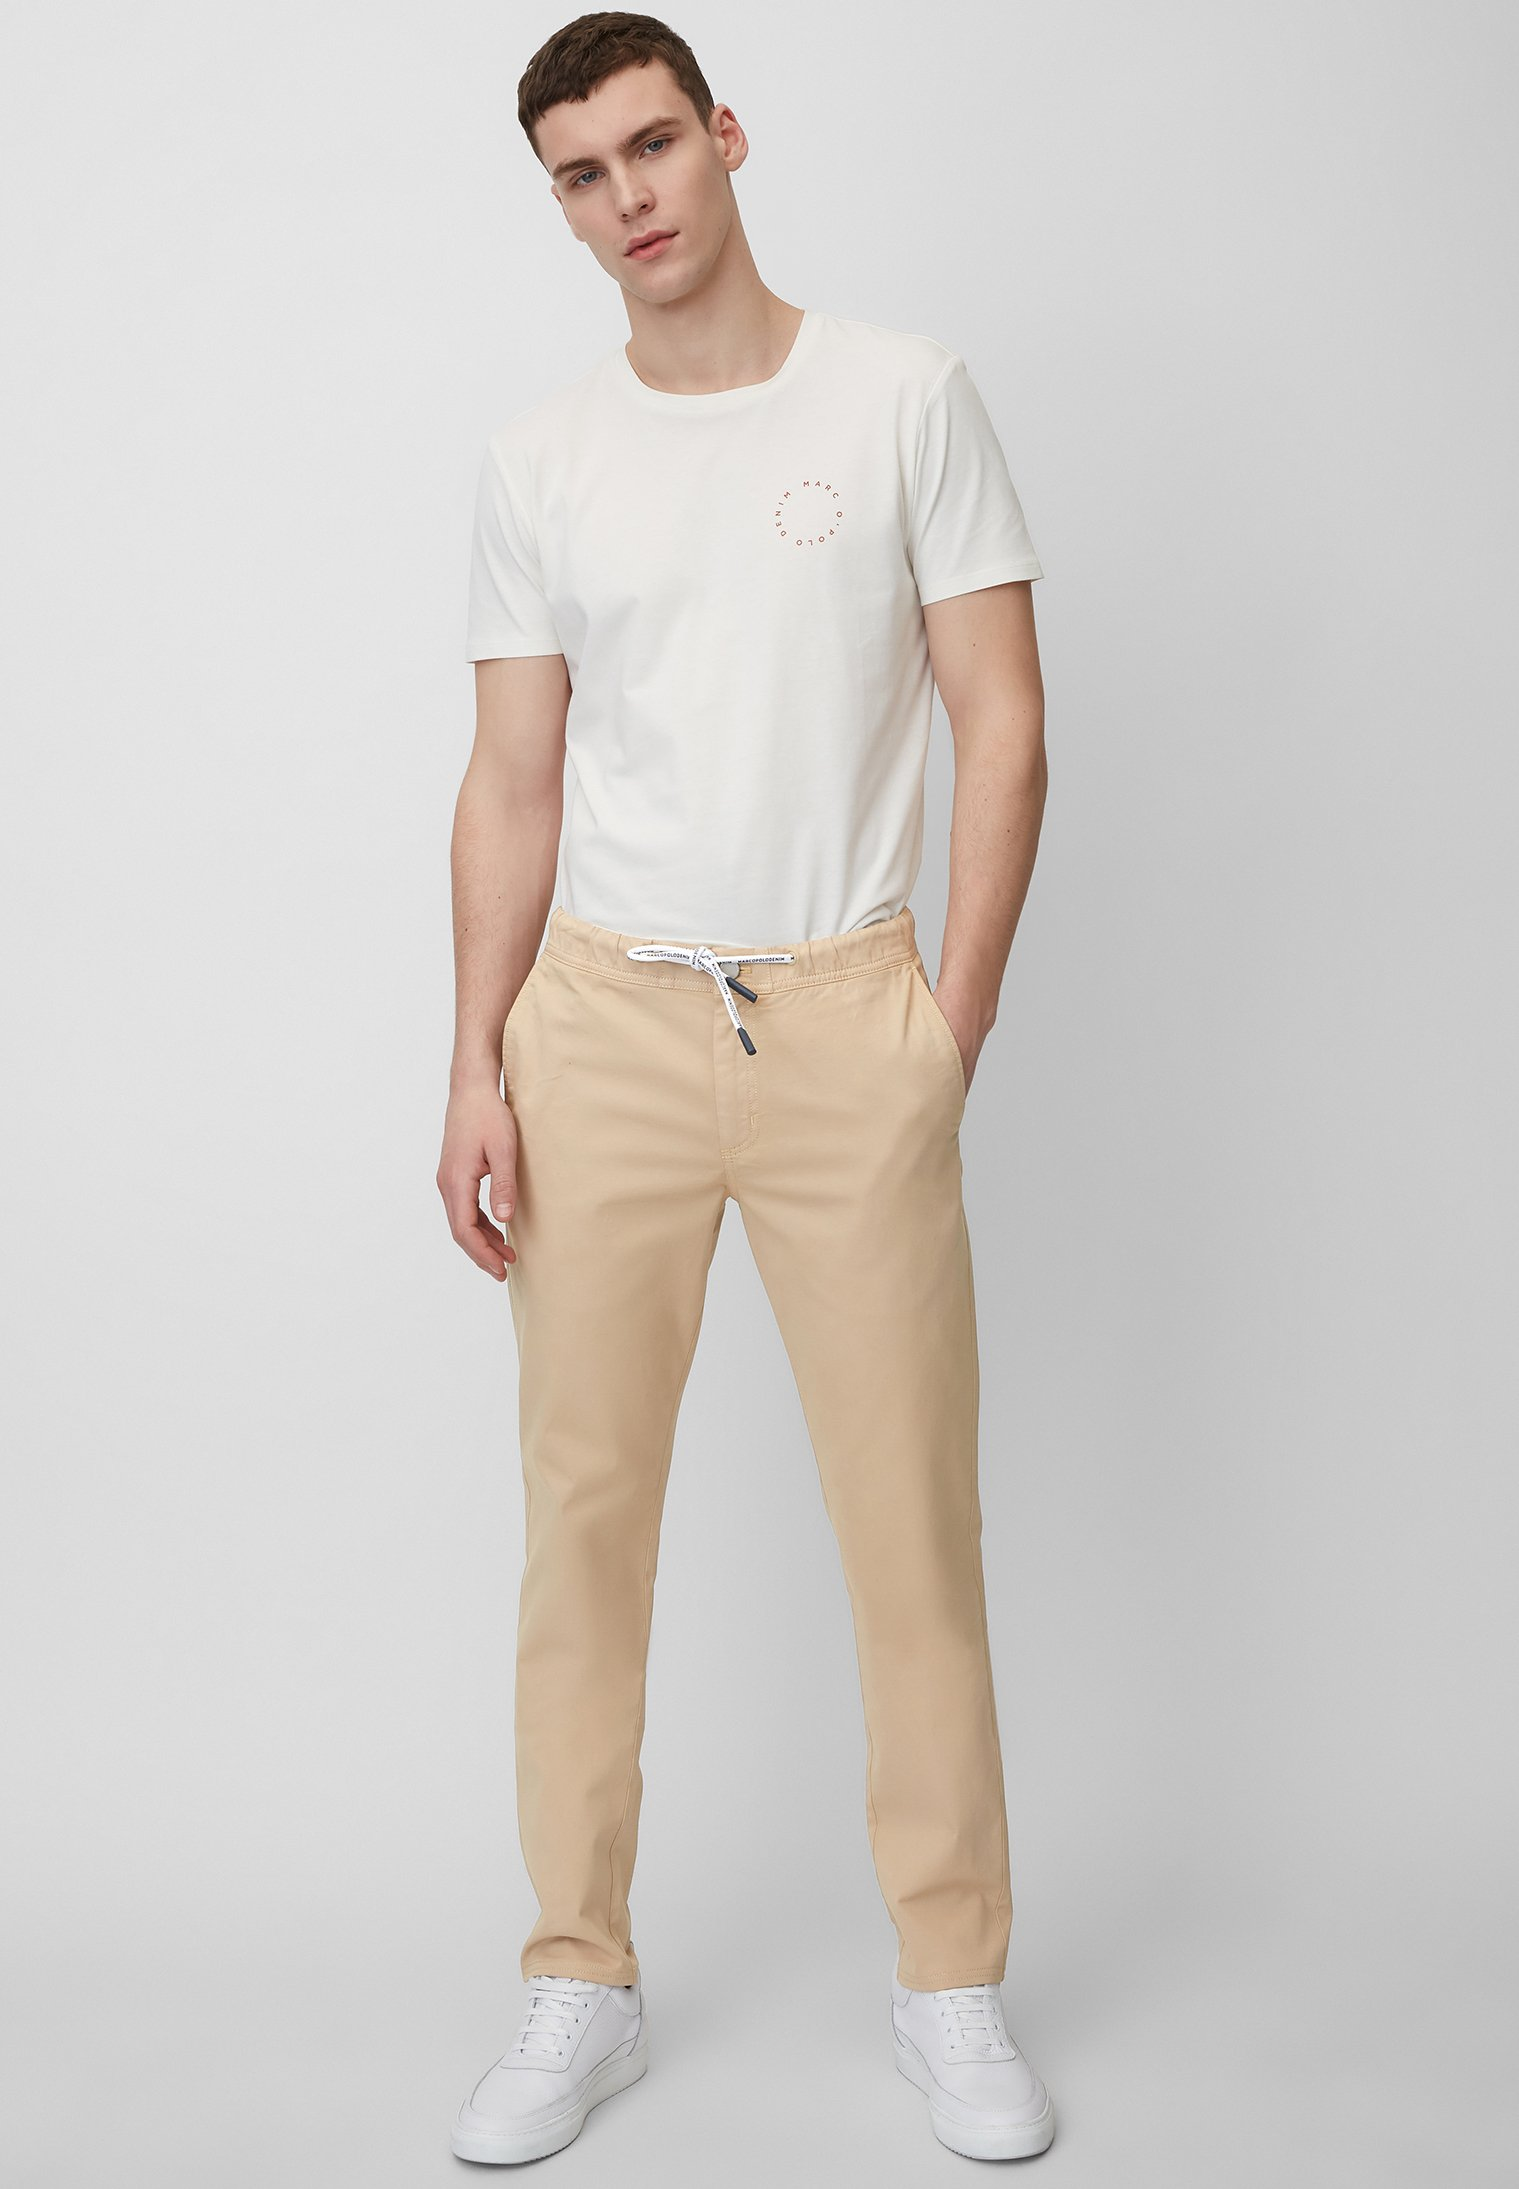 Marc O'polo Denim Chino - Beige MUOz7Kv